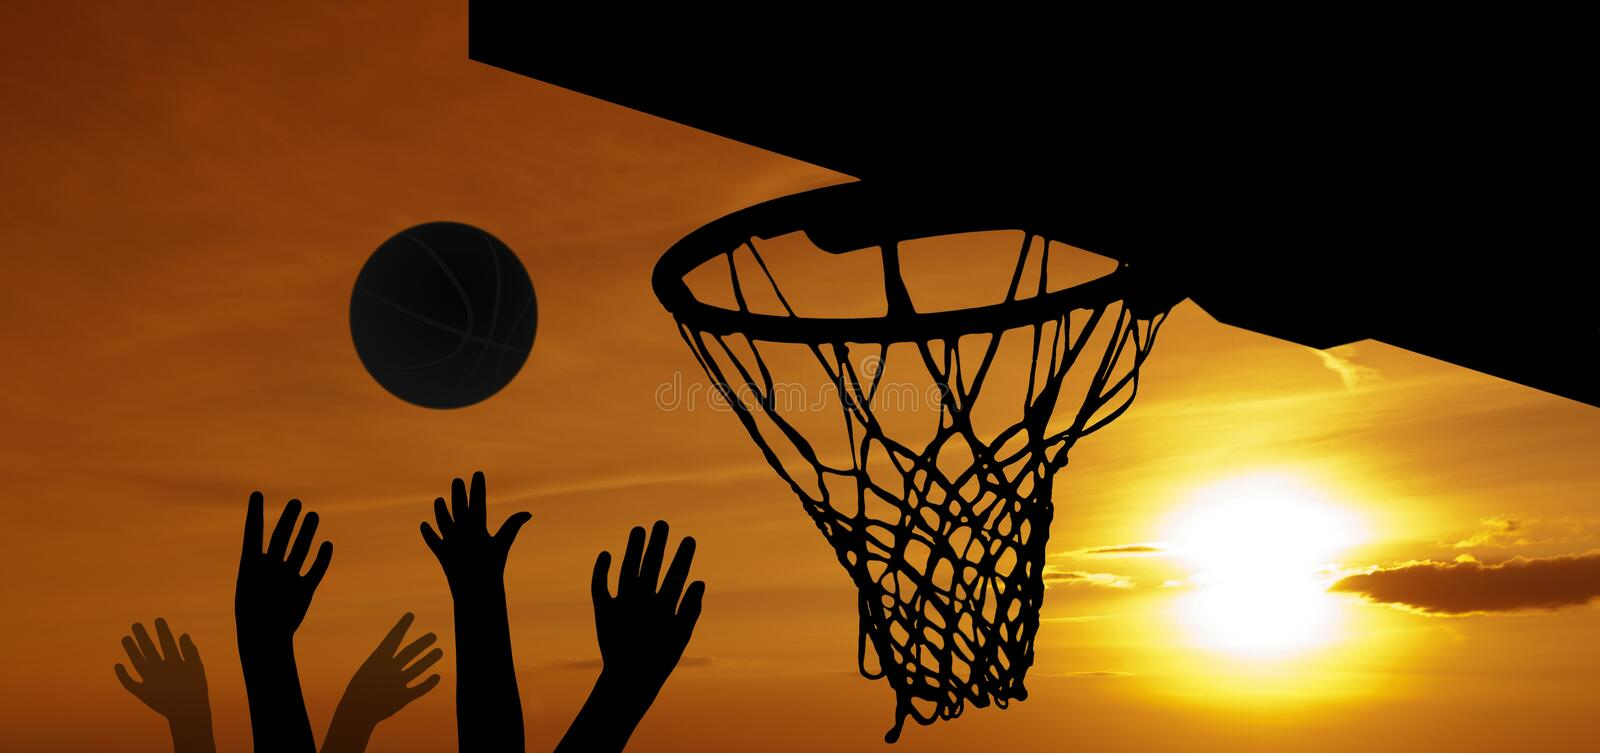 Download Basketball at sunset stock illustration. Illustration of jumping - 19671601